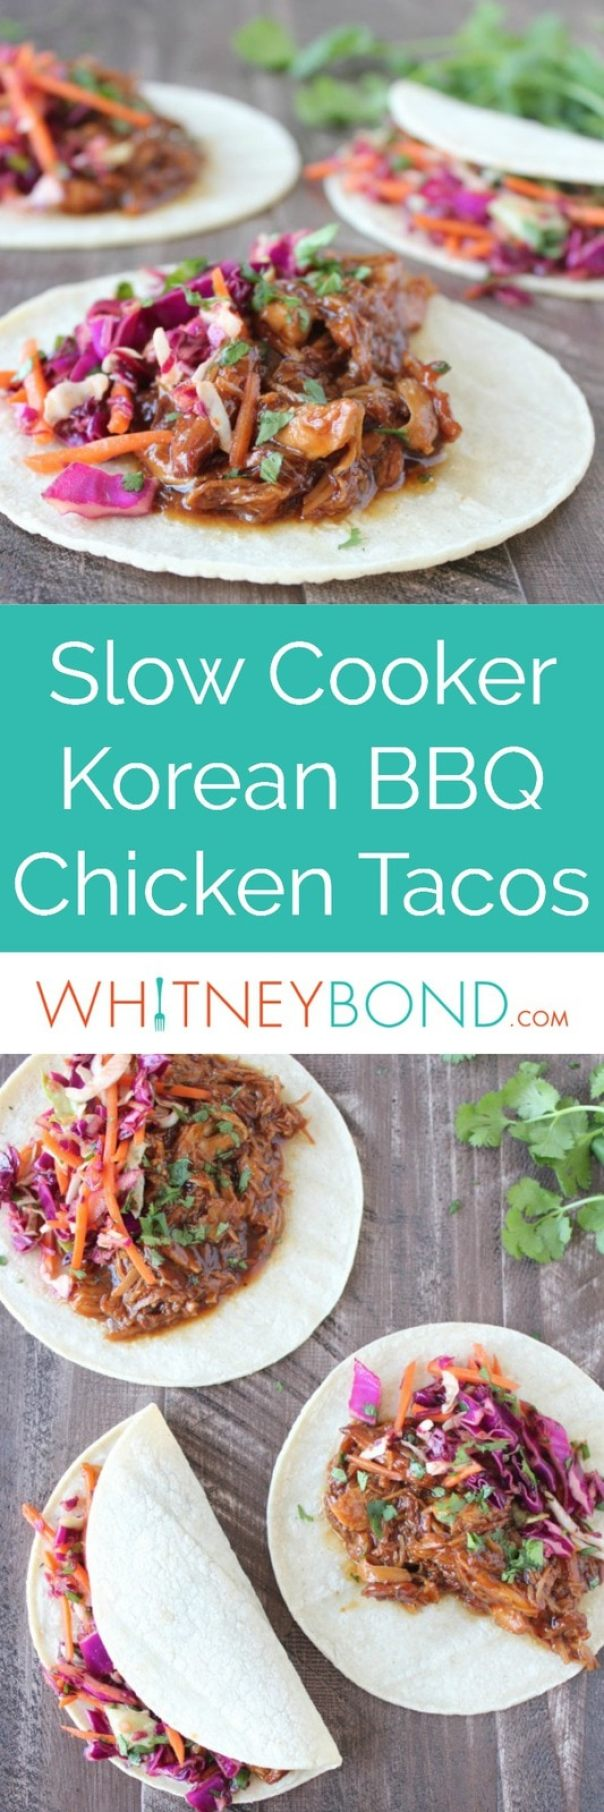 Chicken is slow cooked in a delicious Korean BBQ sauce, shredded and added to tortillas in this scrumptious taco recipe topped with Asian slaw.